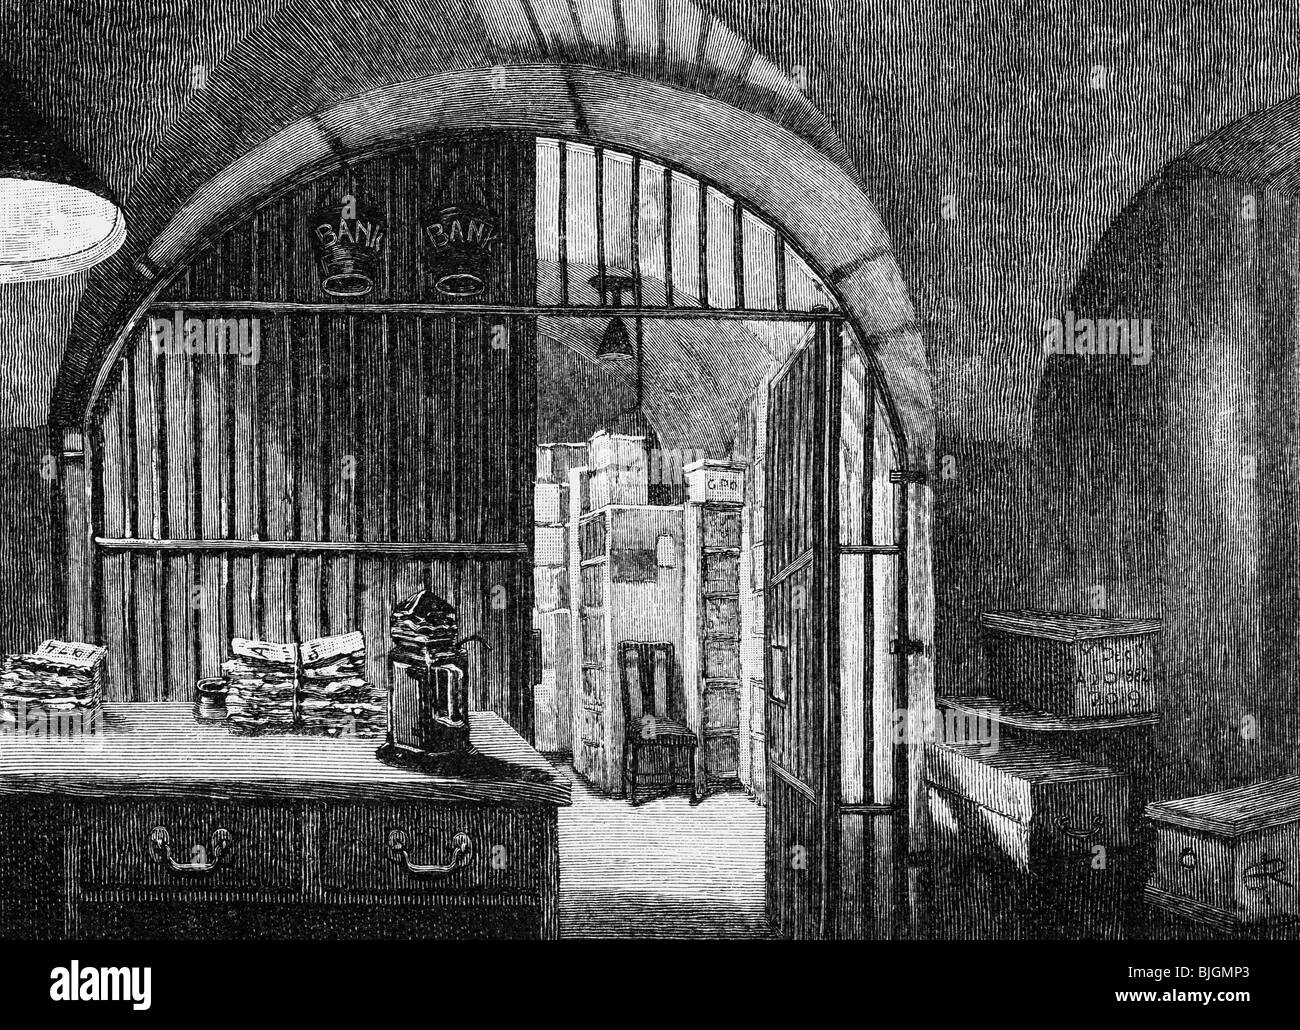 money / finance, banks, Bank of England, Threadneedle Street, London, interior view, library of banknotes, wood - Stock Image